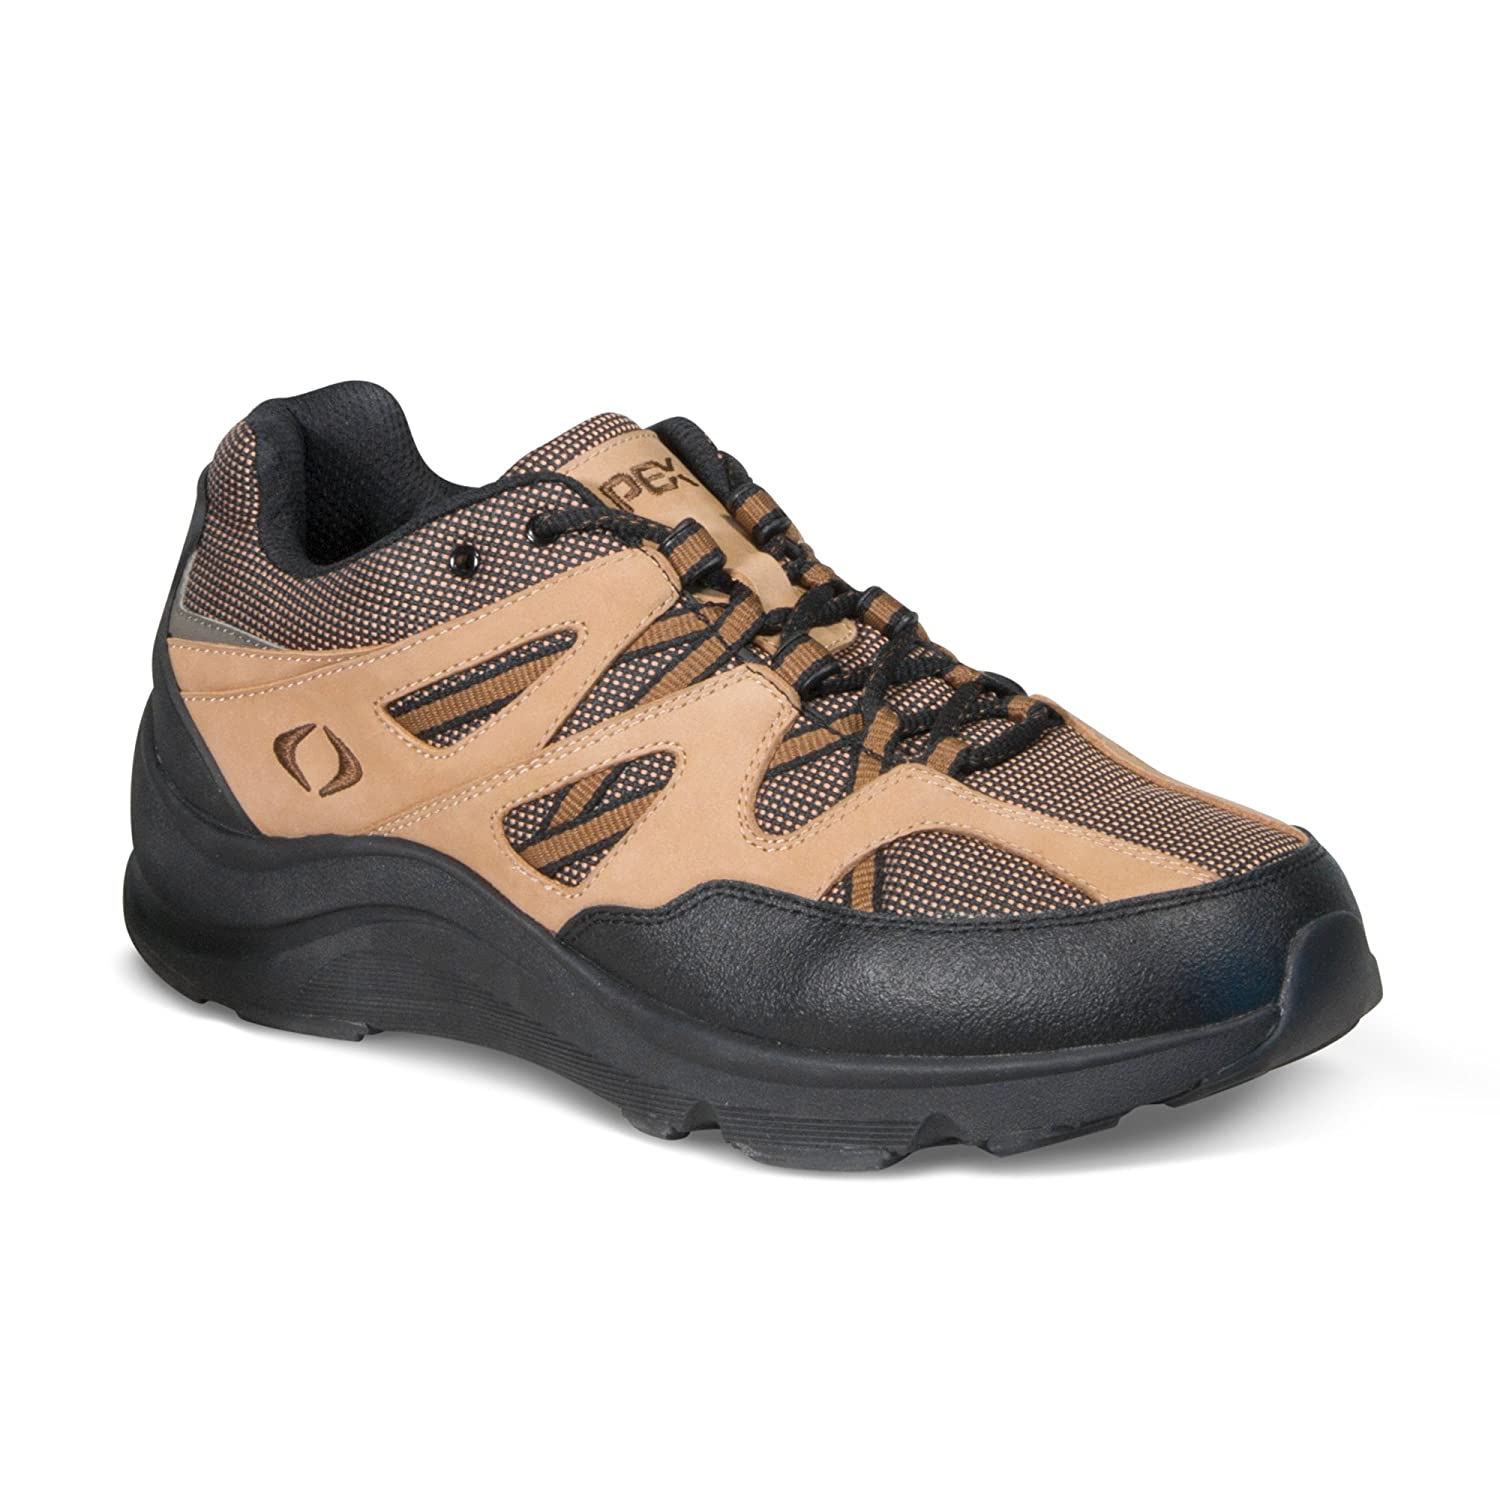 V751MW13 Hiking Shoe